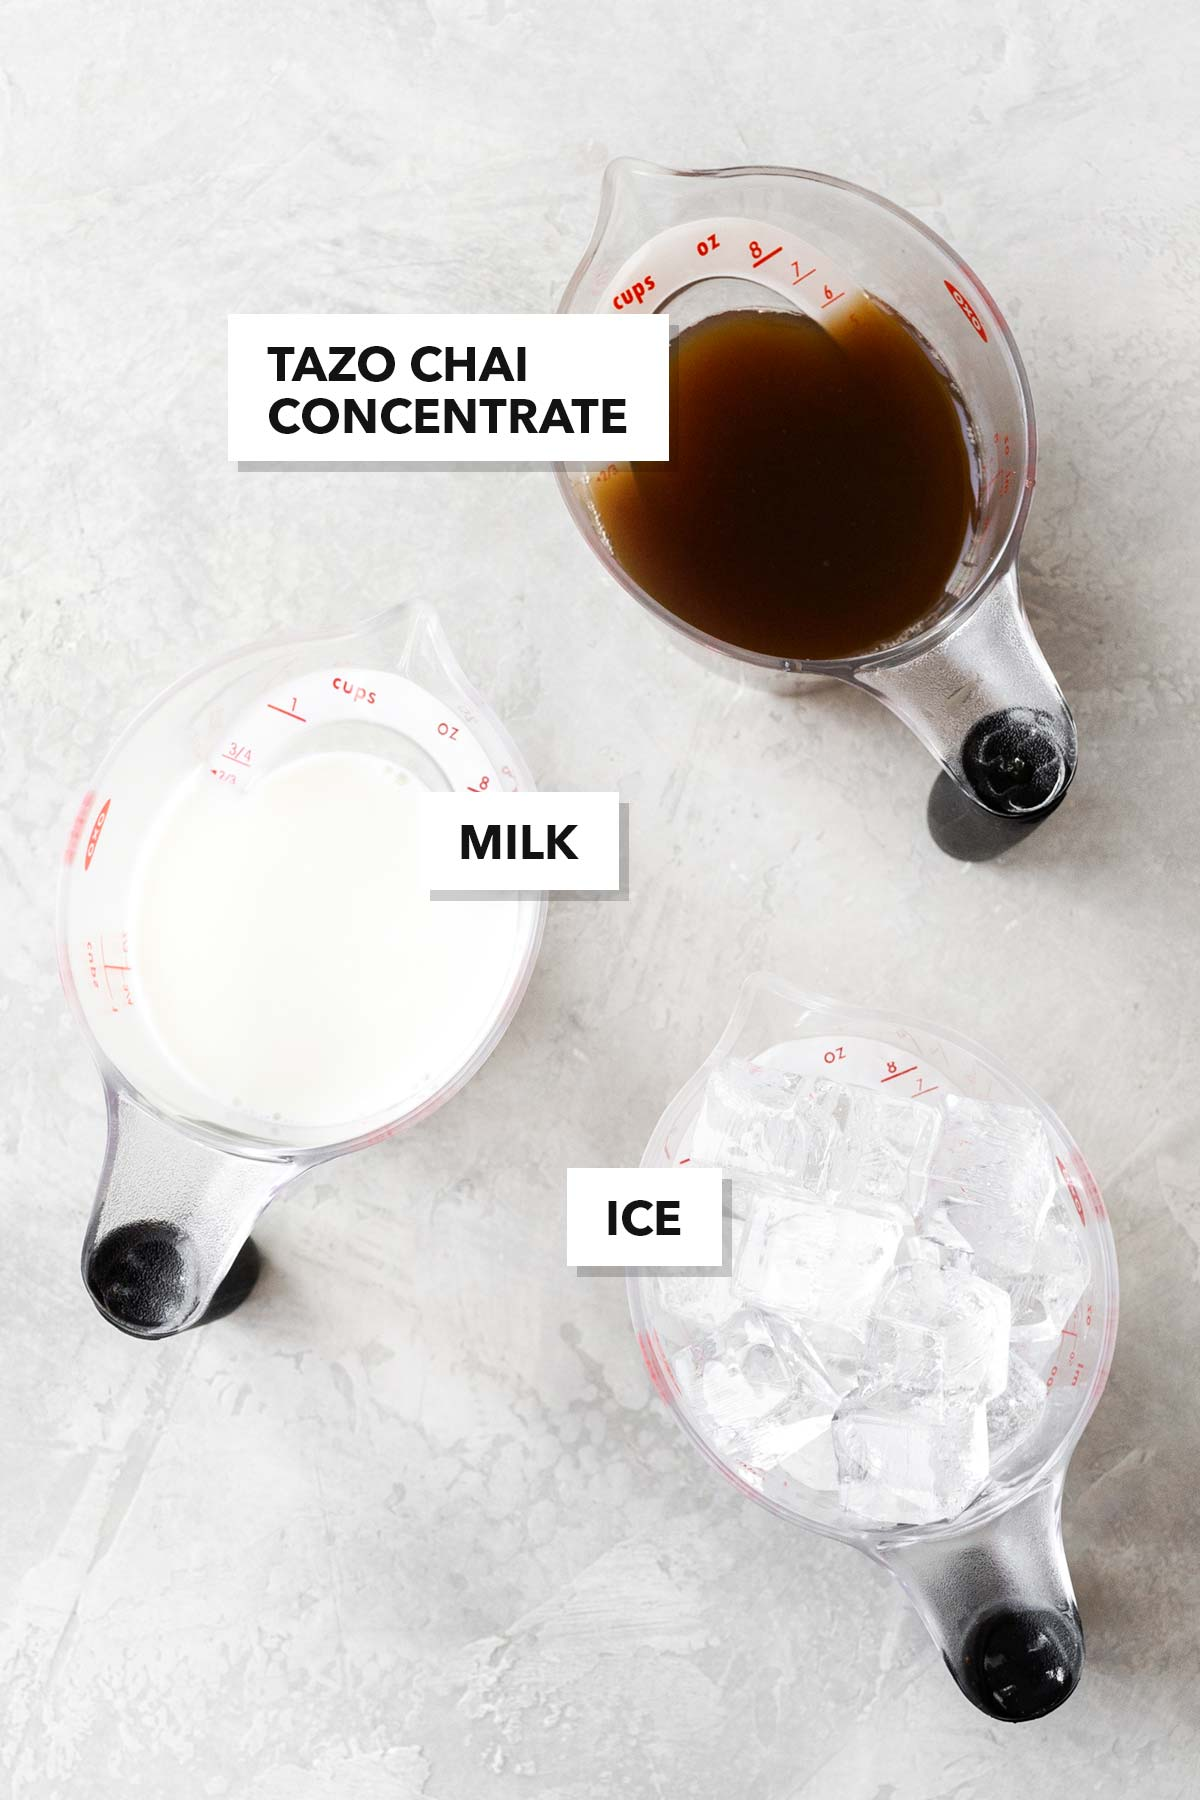 Starbucks Iced Chai Tea Latte ingredients.